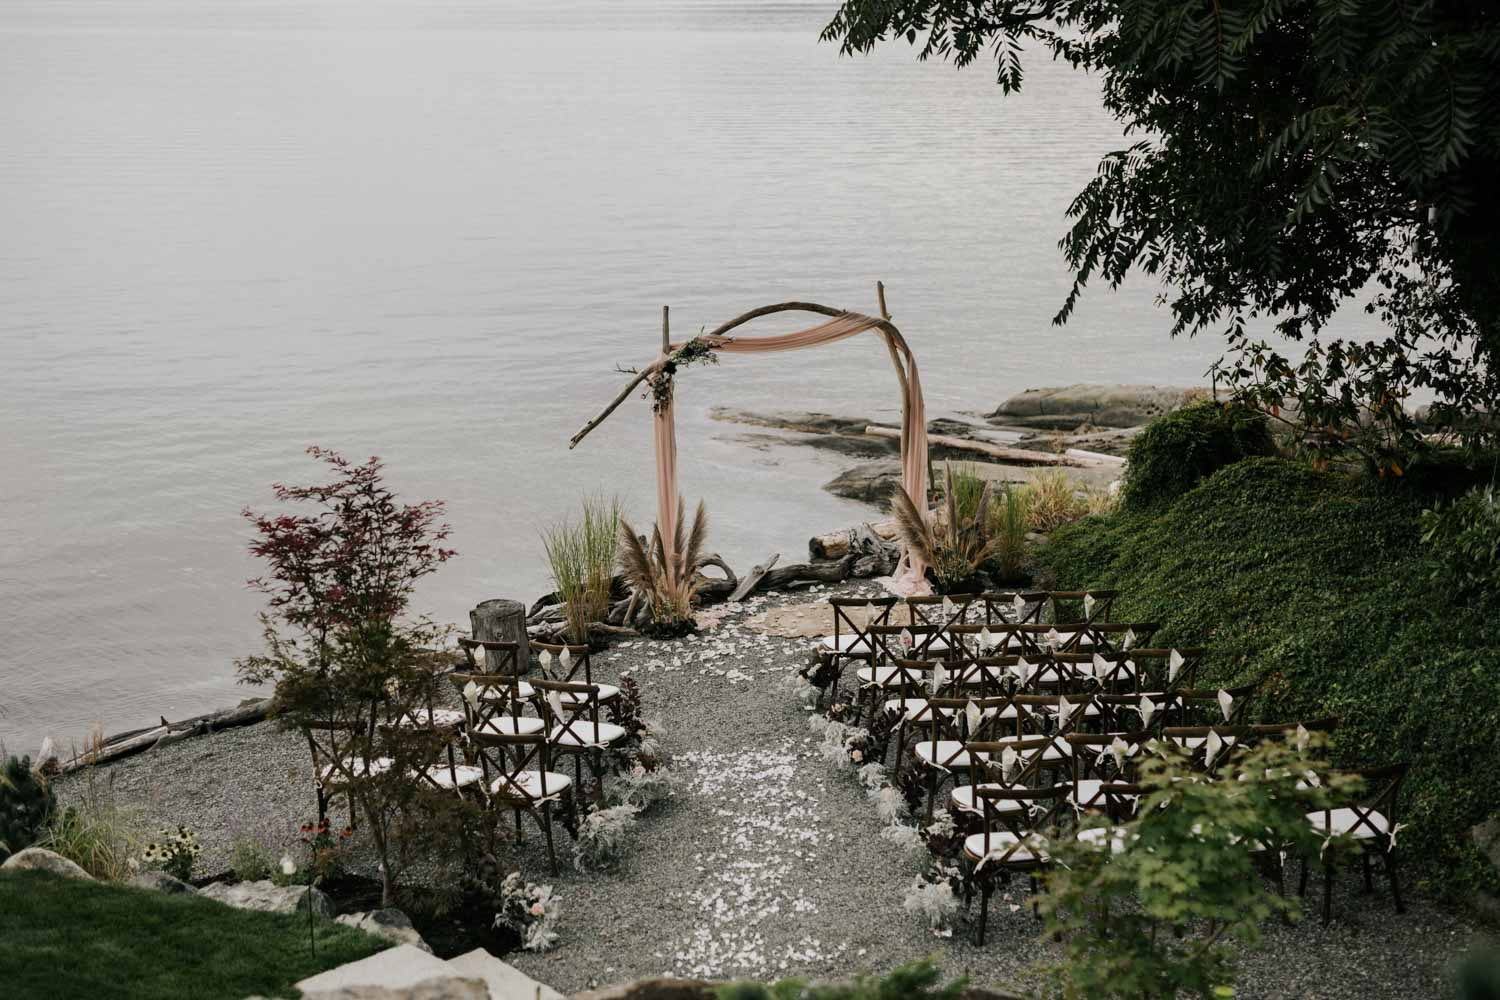 Beautiful ceremony setup for small wedding on the beach overlooking the sea on Vancouver Island decor ideas simple wooden flower arch boho mat